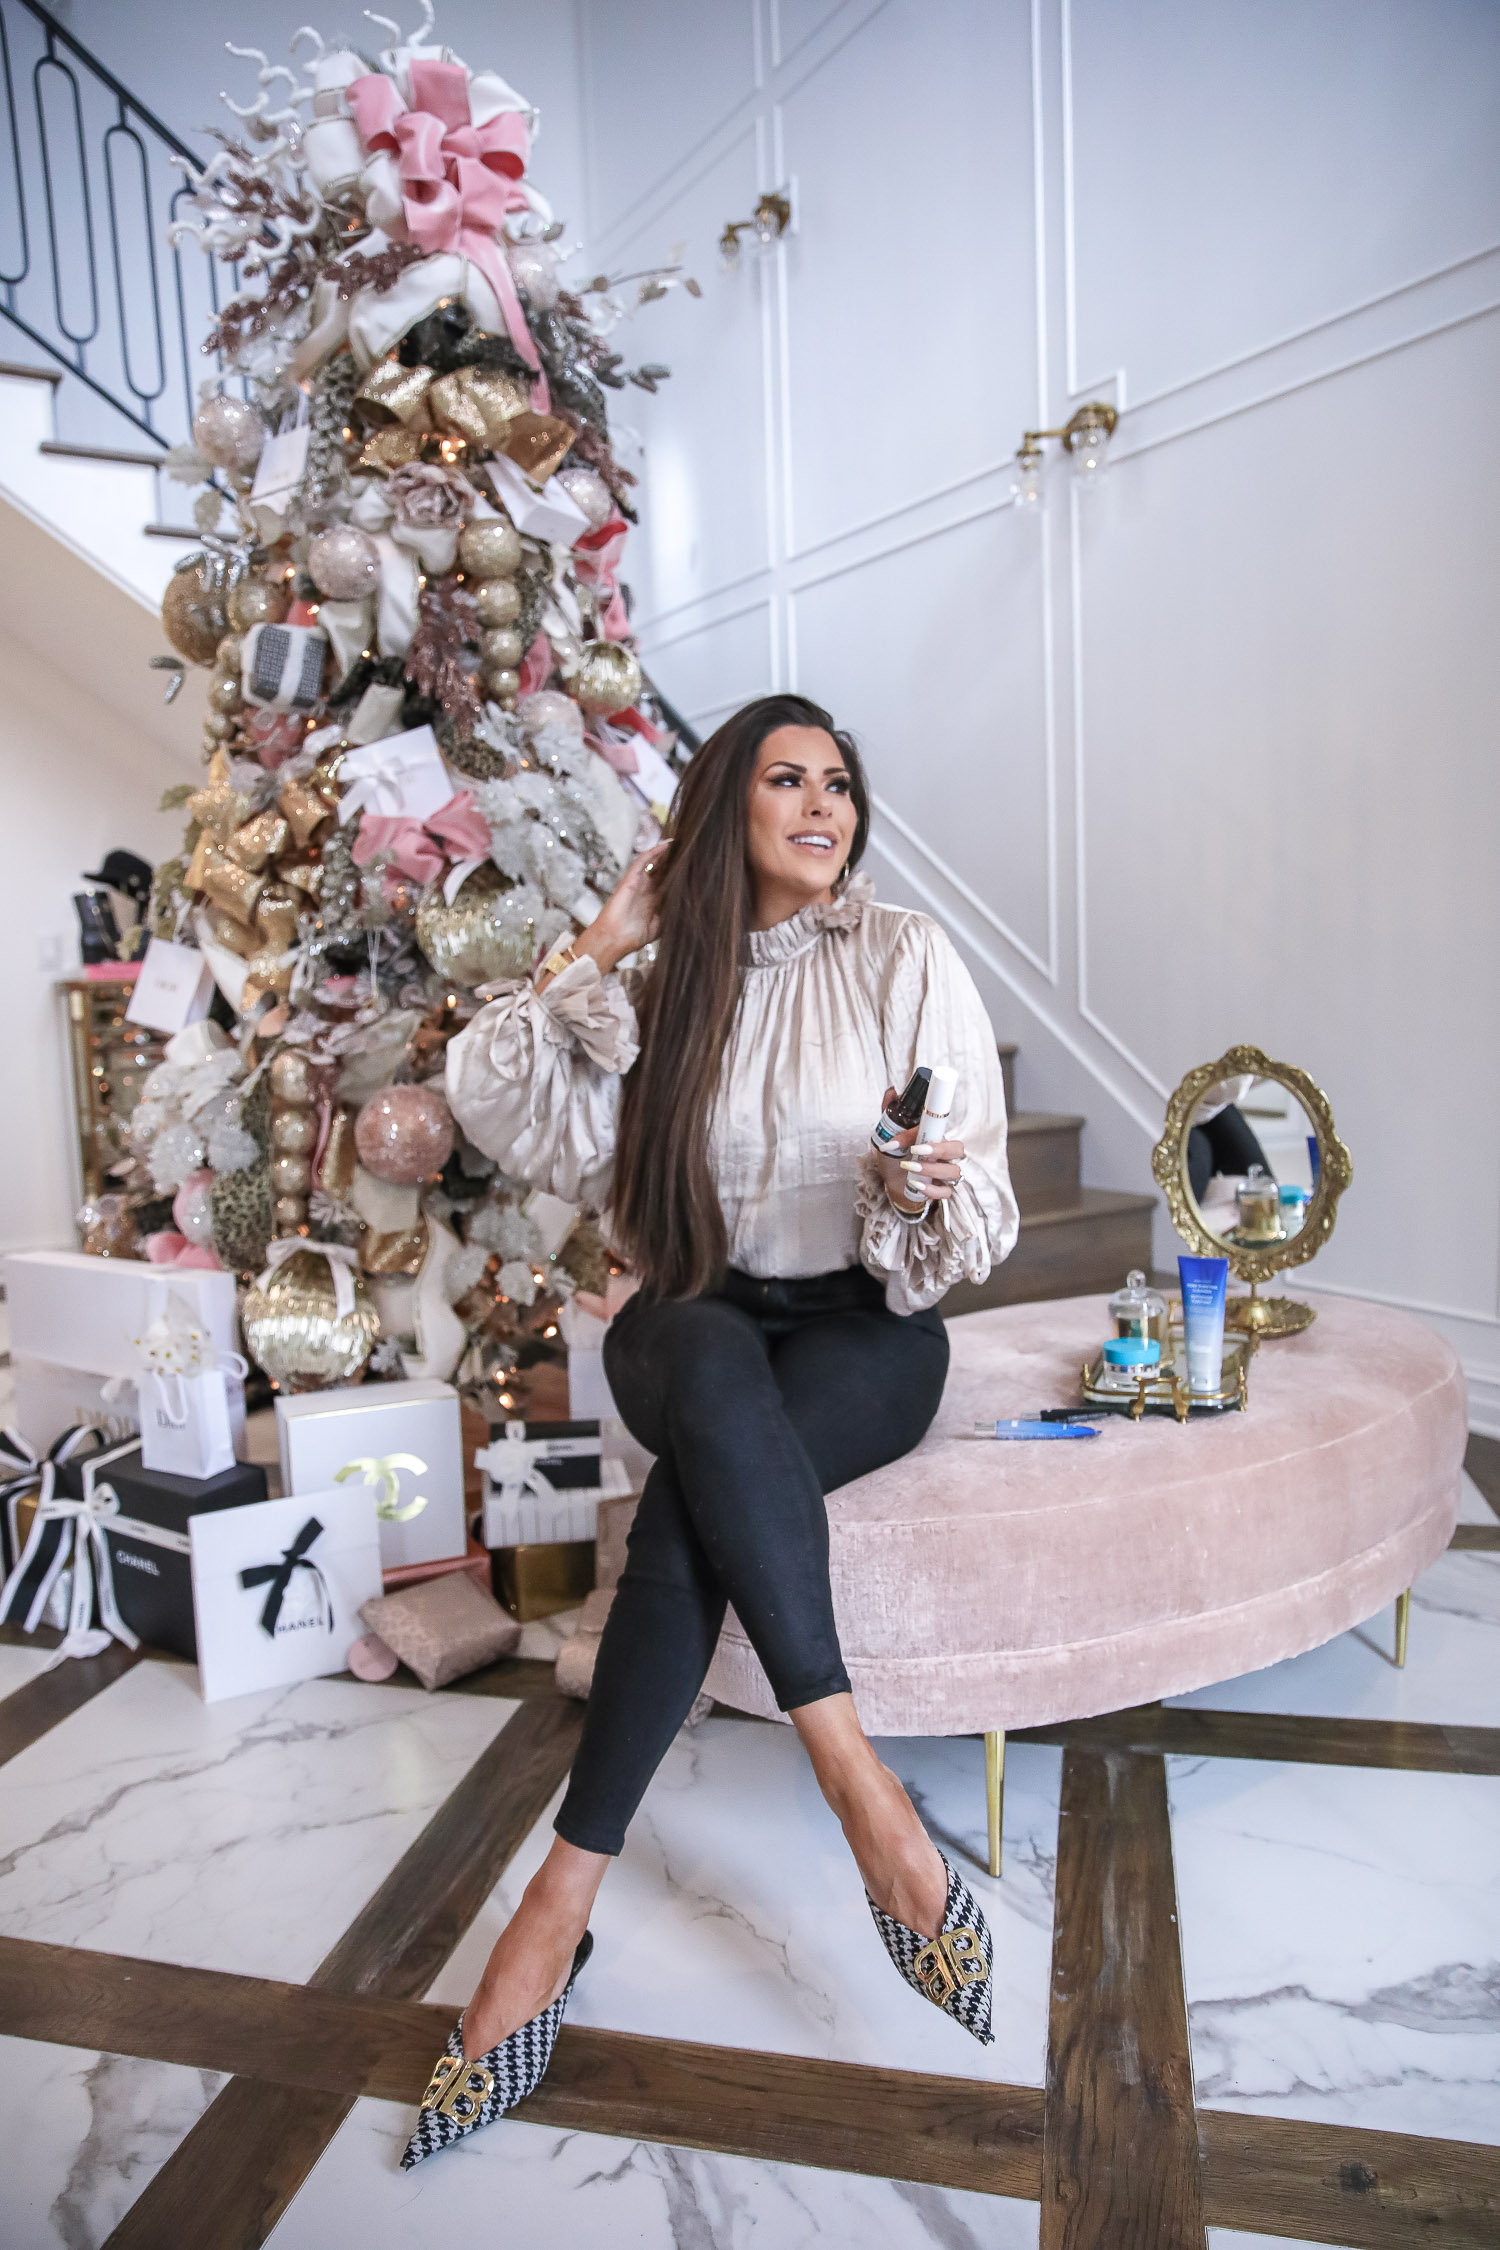 Dr Brandt review eye baggage, best dr brandt products, Dr Brandt Pores No More, Emily Gemma |Dr. Brandt by popular US beauty blog, The Sweetest Thing: image of Emily Gemma sitting on pink velvet ottoman in front of a Christmas tree and holding some Dr. Brandt skincare products in her hands.